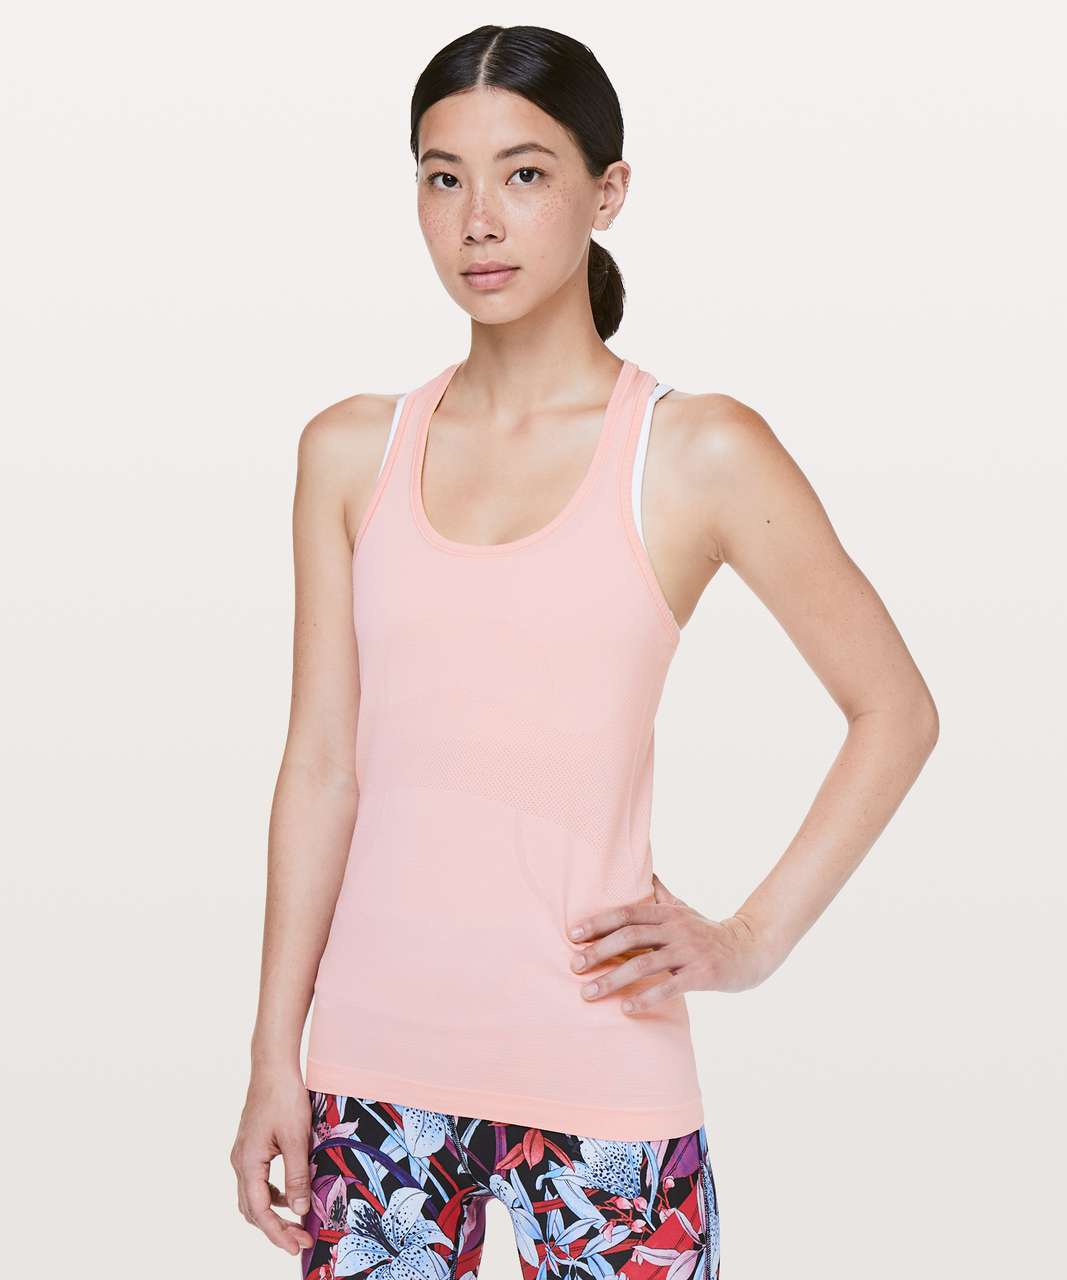 Lululemon Swiftly Tech Racerback - Dusty Pink / Dusty Pink